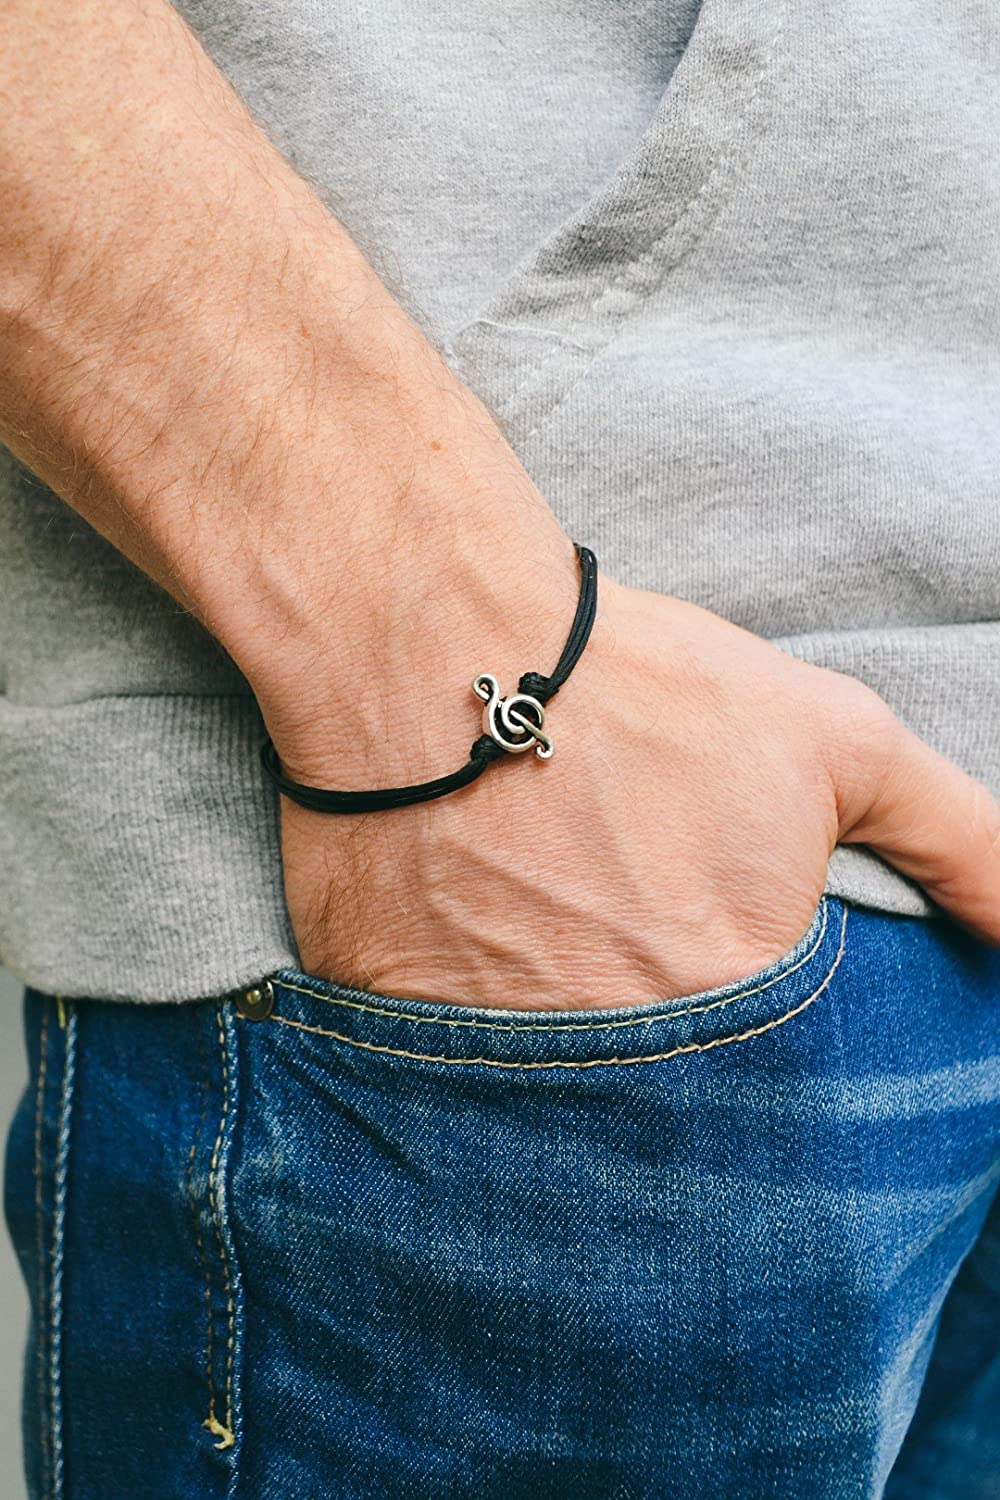 Treble clef bracelet for men, men's bracelet, silver music note charm, black cords, gift for him, musician bracelet, g clef, mens jewelry men' s bracelet